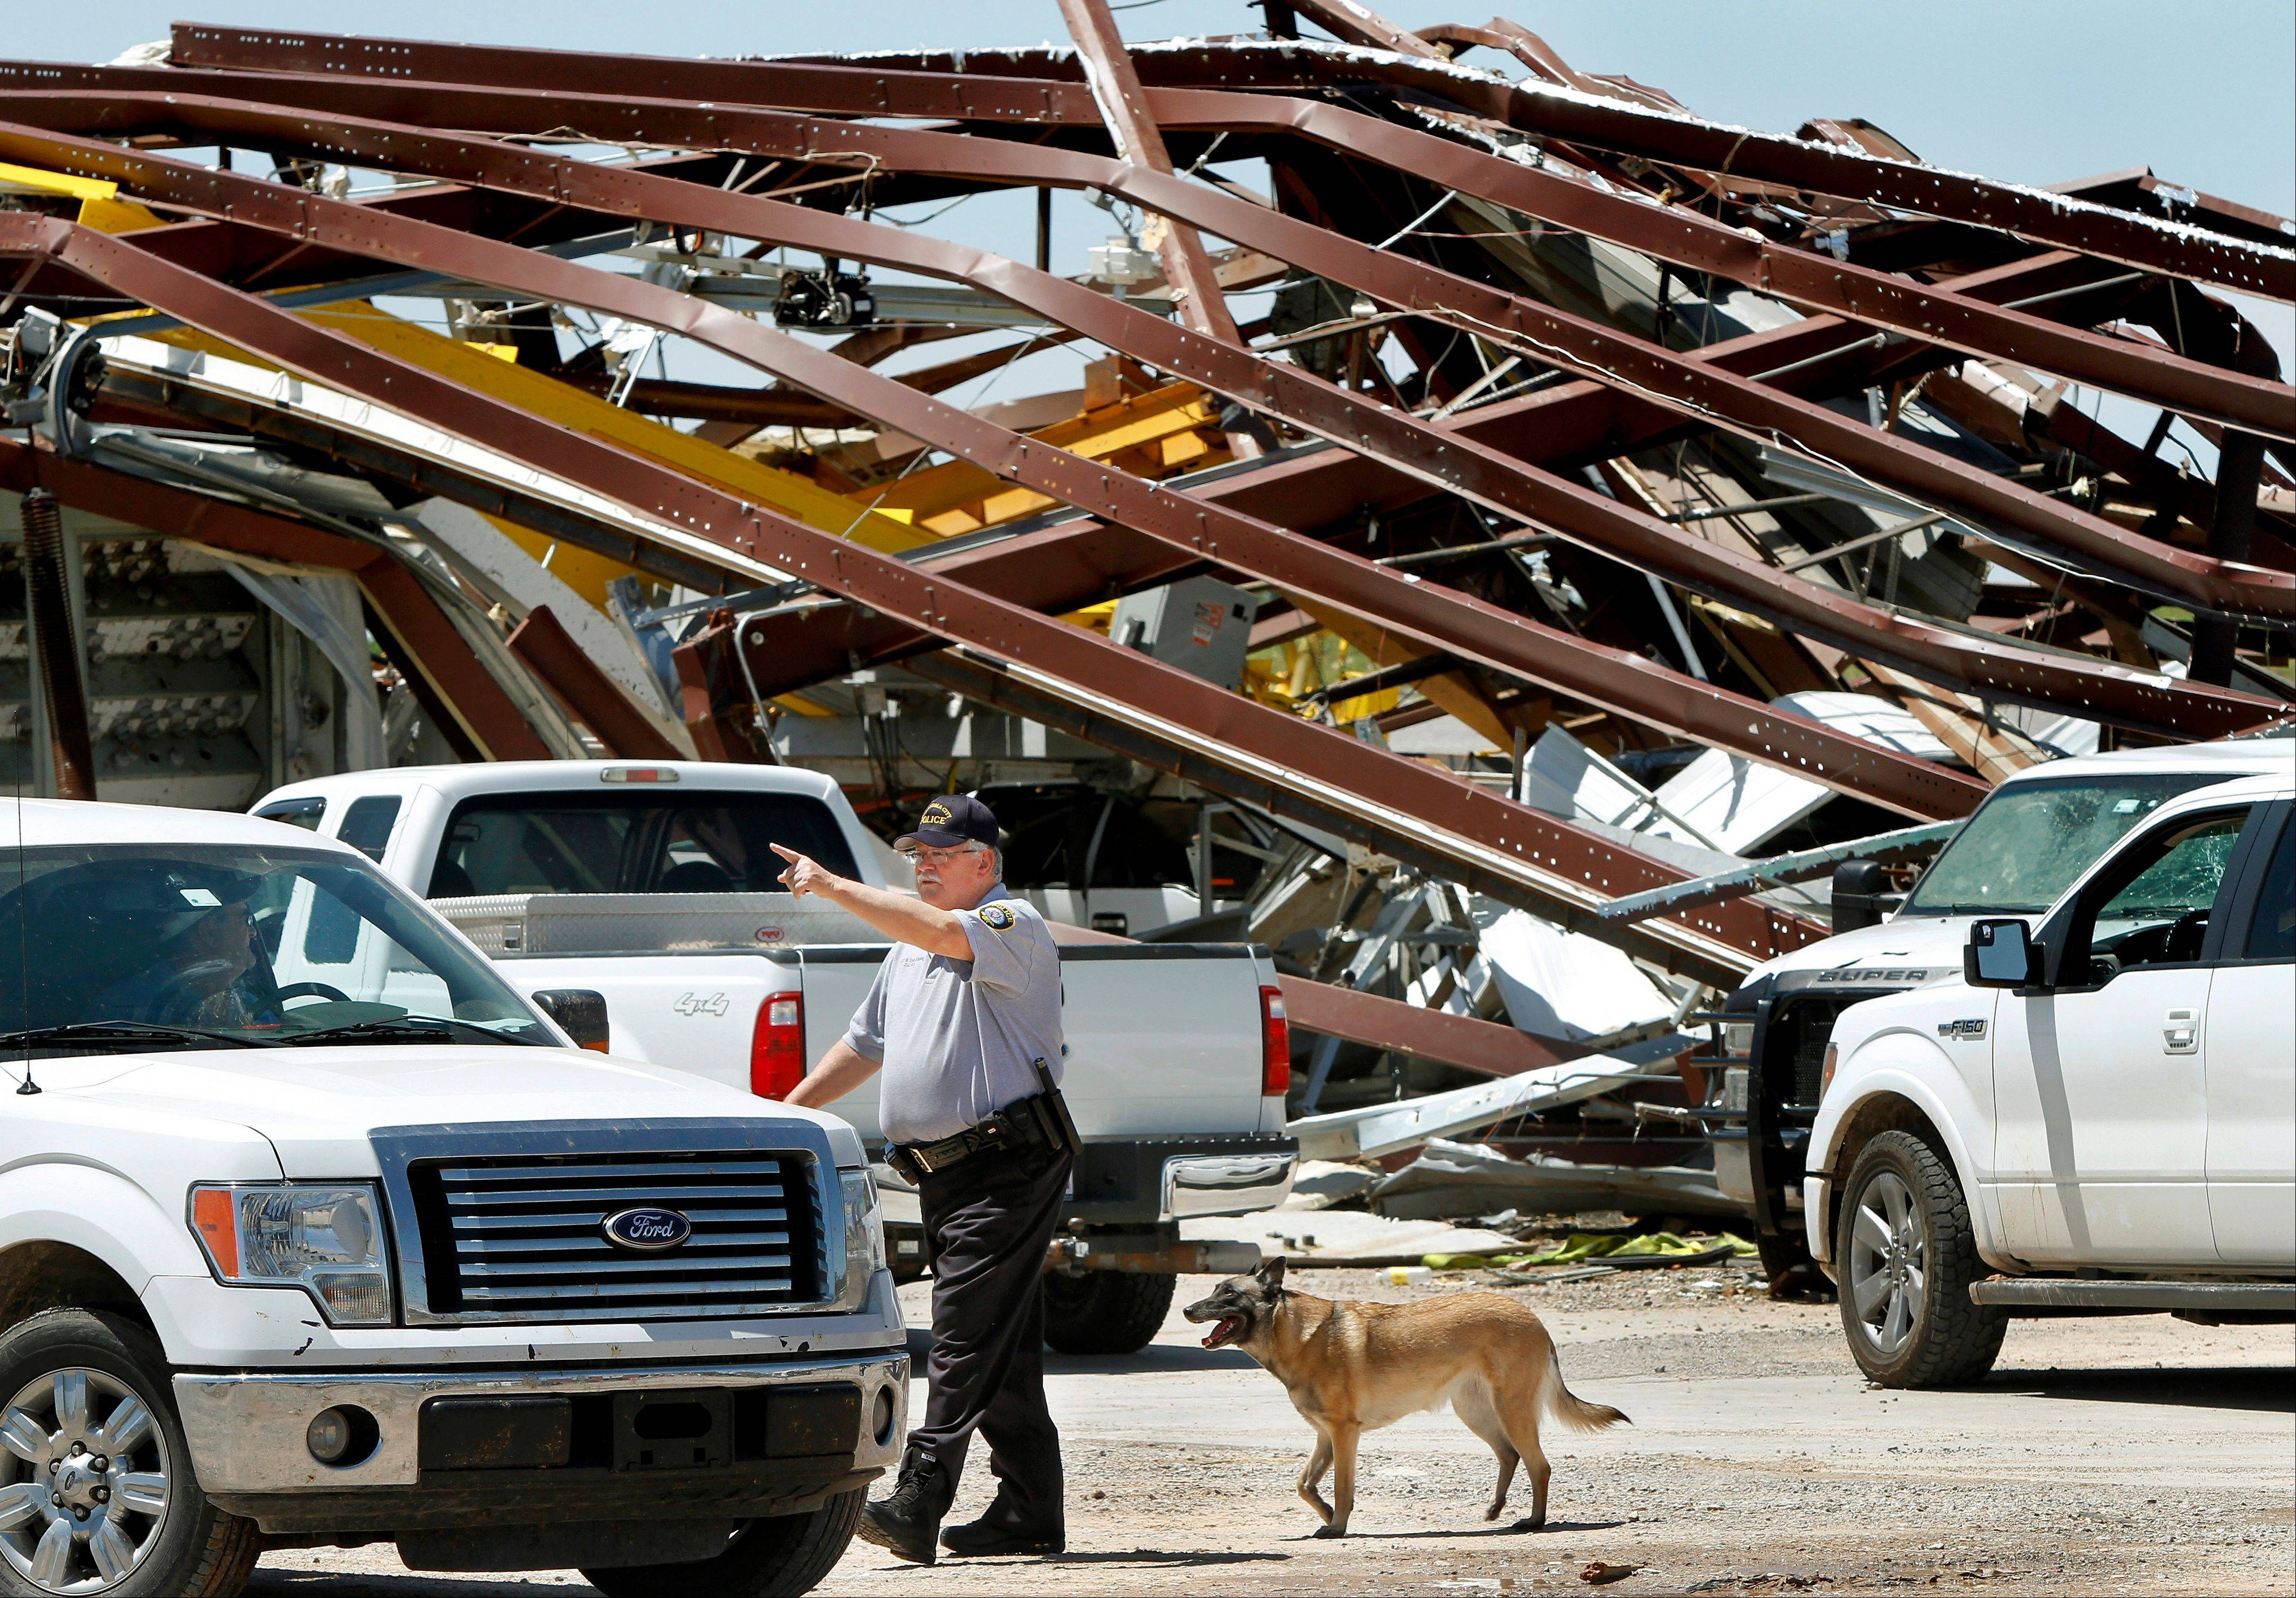 A police officer offers directions to a driver leaving this heavily damaged supply yard for Cactus Drilling Company on State Highway 66 in El Reno, Okla.